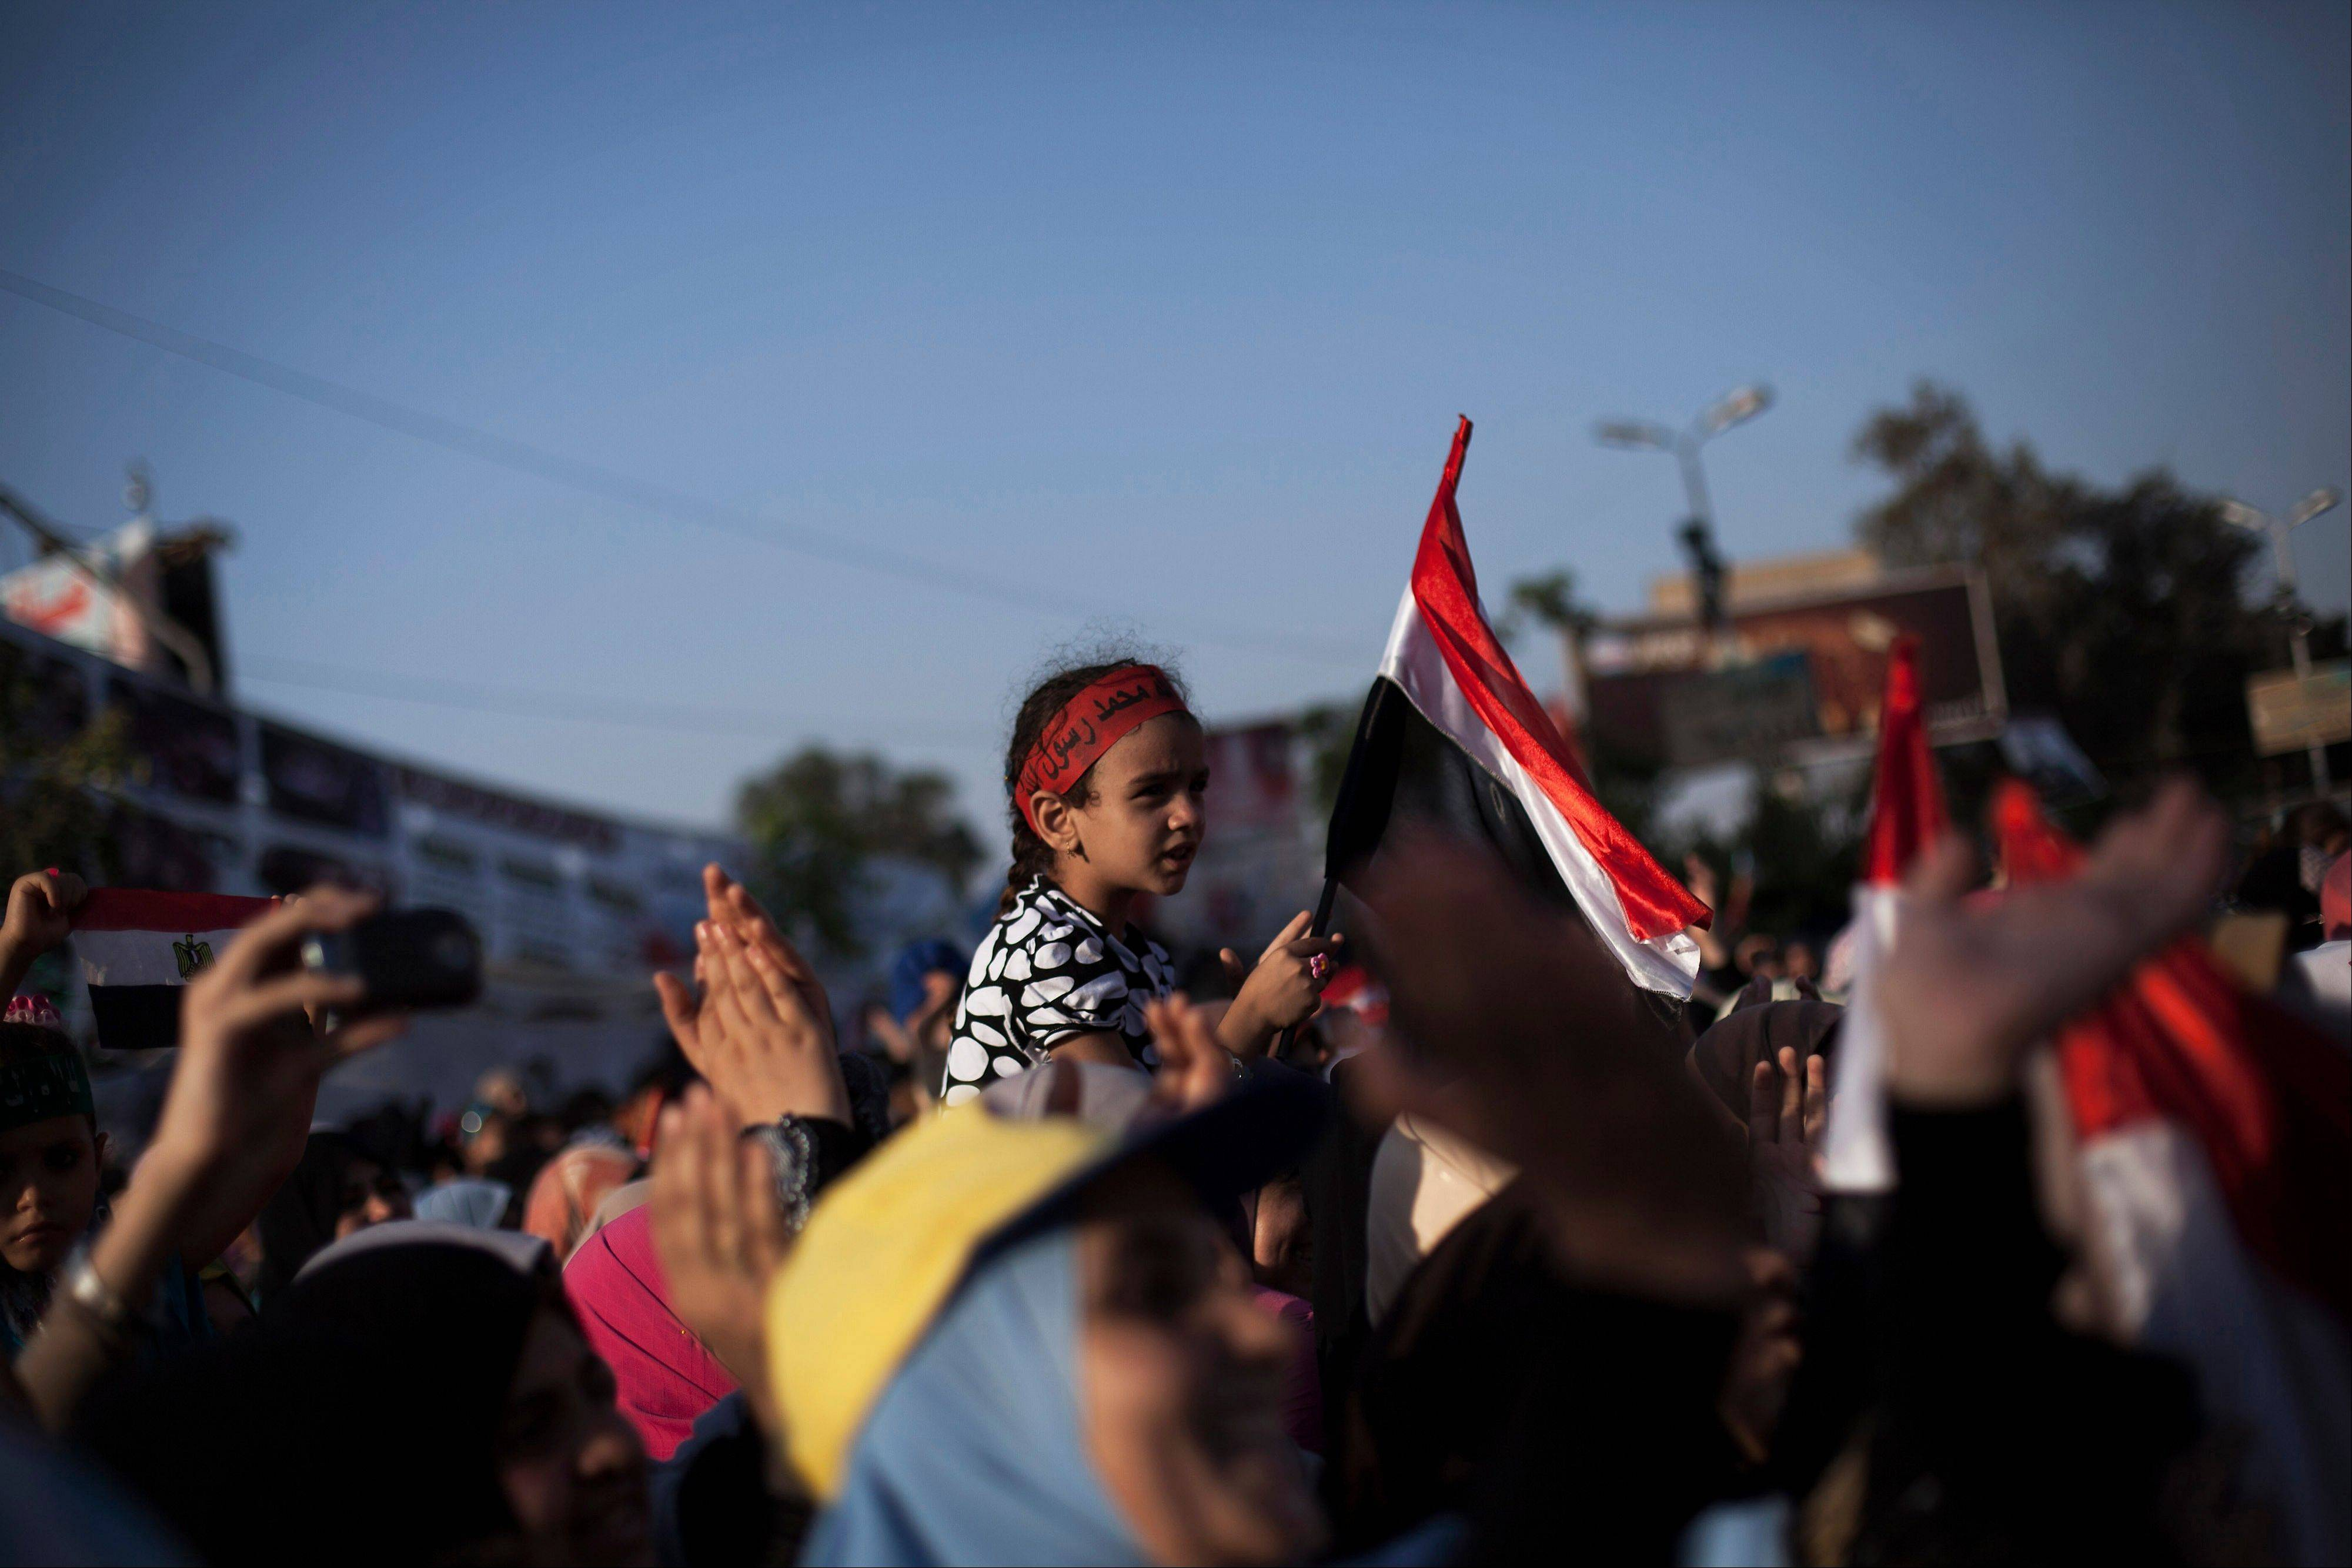 An Egyptian girl waves a national flag while supporters of Egypt's ousted President Mohammed Morsi chant slogans against the Egyptian Army at the sit-in at Rabaah al-Adawiya mosque, which is fortified with multiple walls of bricks, tires, metal barricades and sandbags, and where protesters have installed their camp in Nasr City, Cairo, Egypt, Sunday, Aug. 11, 2013. Egyptian security forces will besiege two sit-ins by supporters of the country's ousted president within 24 hours, police officials said Sunday, setting up a possible confrontation between the military-backed government and the thousands gathered there.